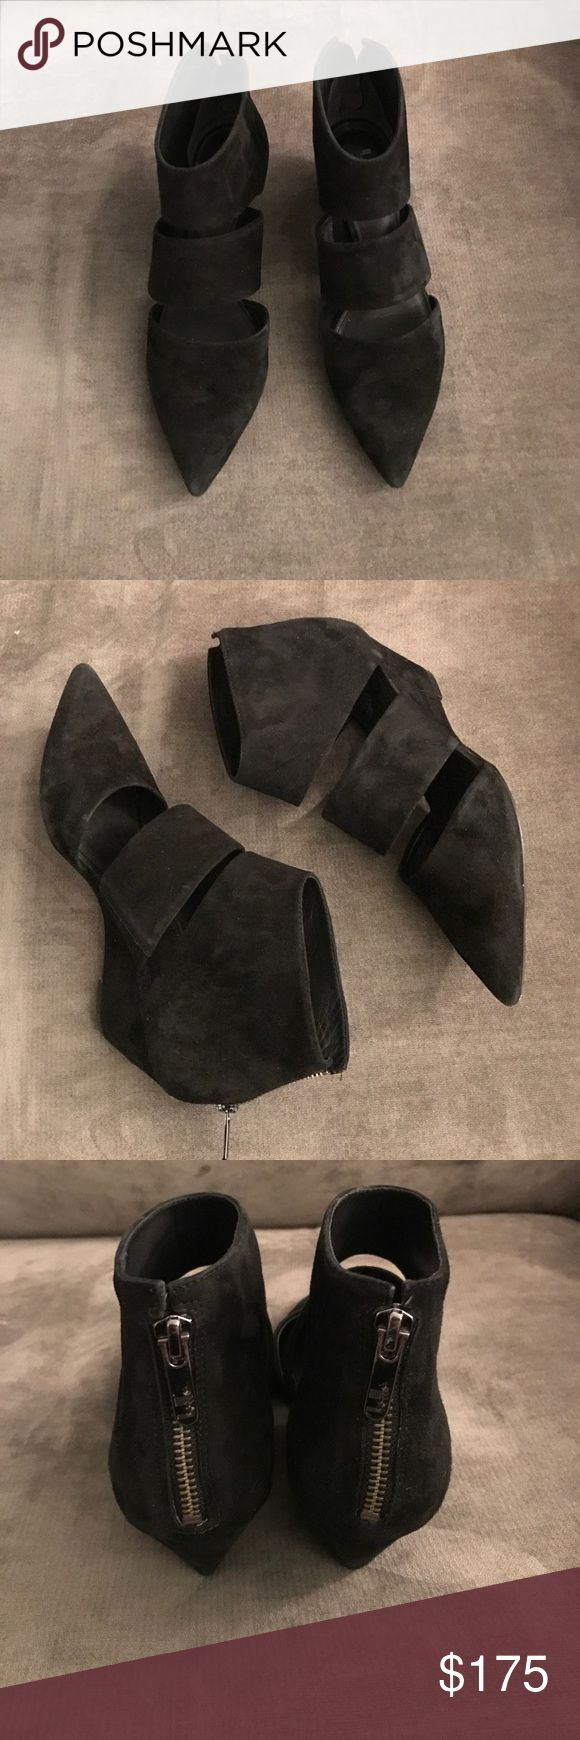 NEW! Belle by Sigerson Morrison Booties Black suede Belle by Sigerson Morrison cutout booties in the Wagner style. Booties have a zip back closure and approximately 2.5 inch wedge heel. There is some wear on the soles but suede and inside of the shoe are in overall very good condition. Size 8 and true to size. Belle by Sigerson Morrison Shoes Ankle Boots & Booties